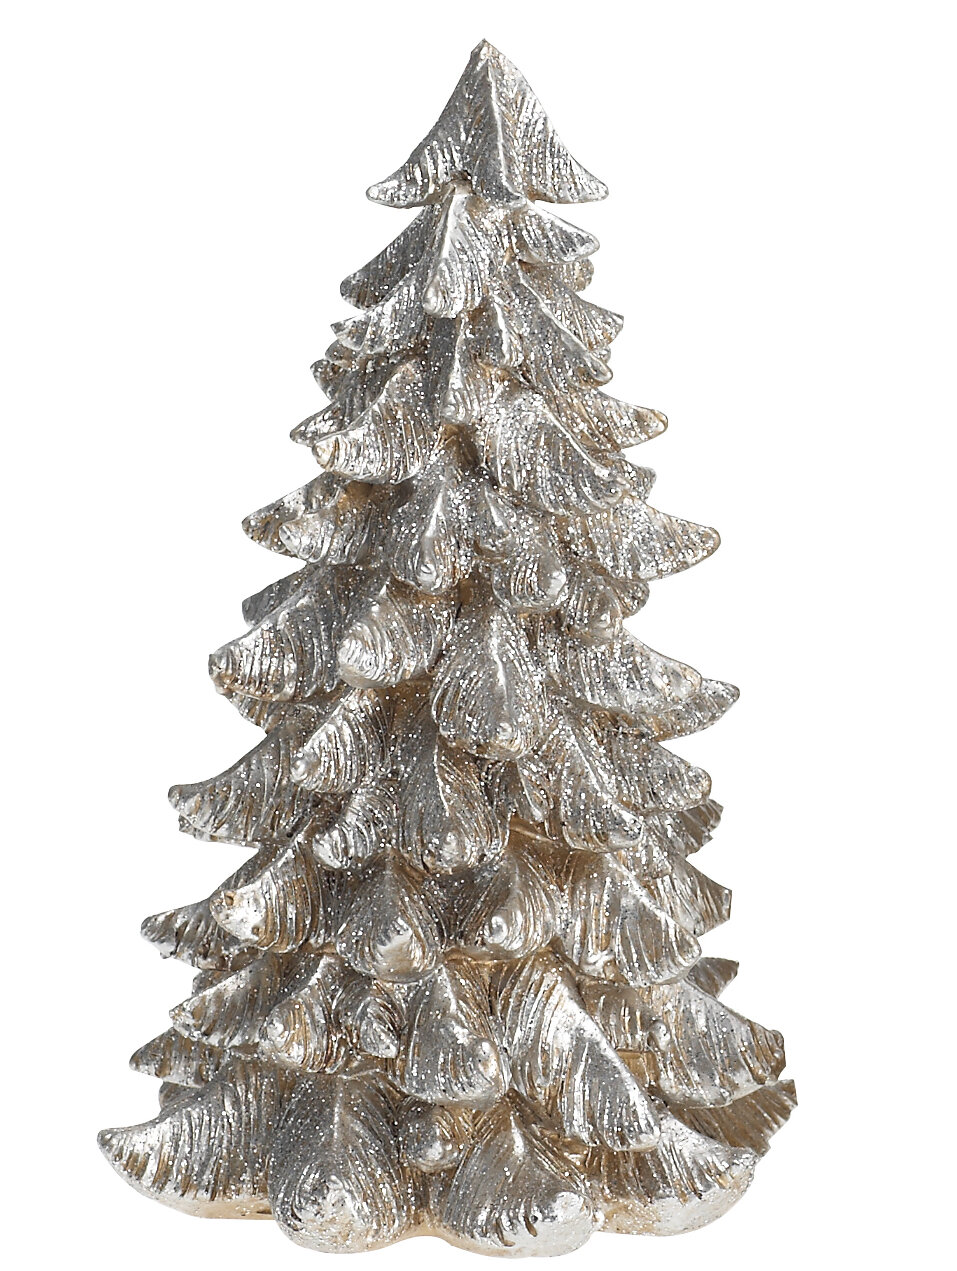 Small Silver Christmas Tree.Desmond Small Resin Silver Gold Tree Figurine